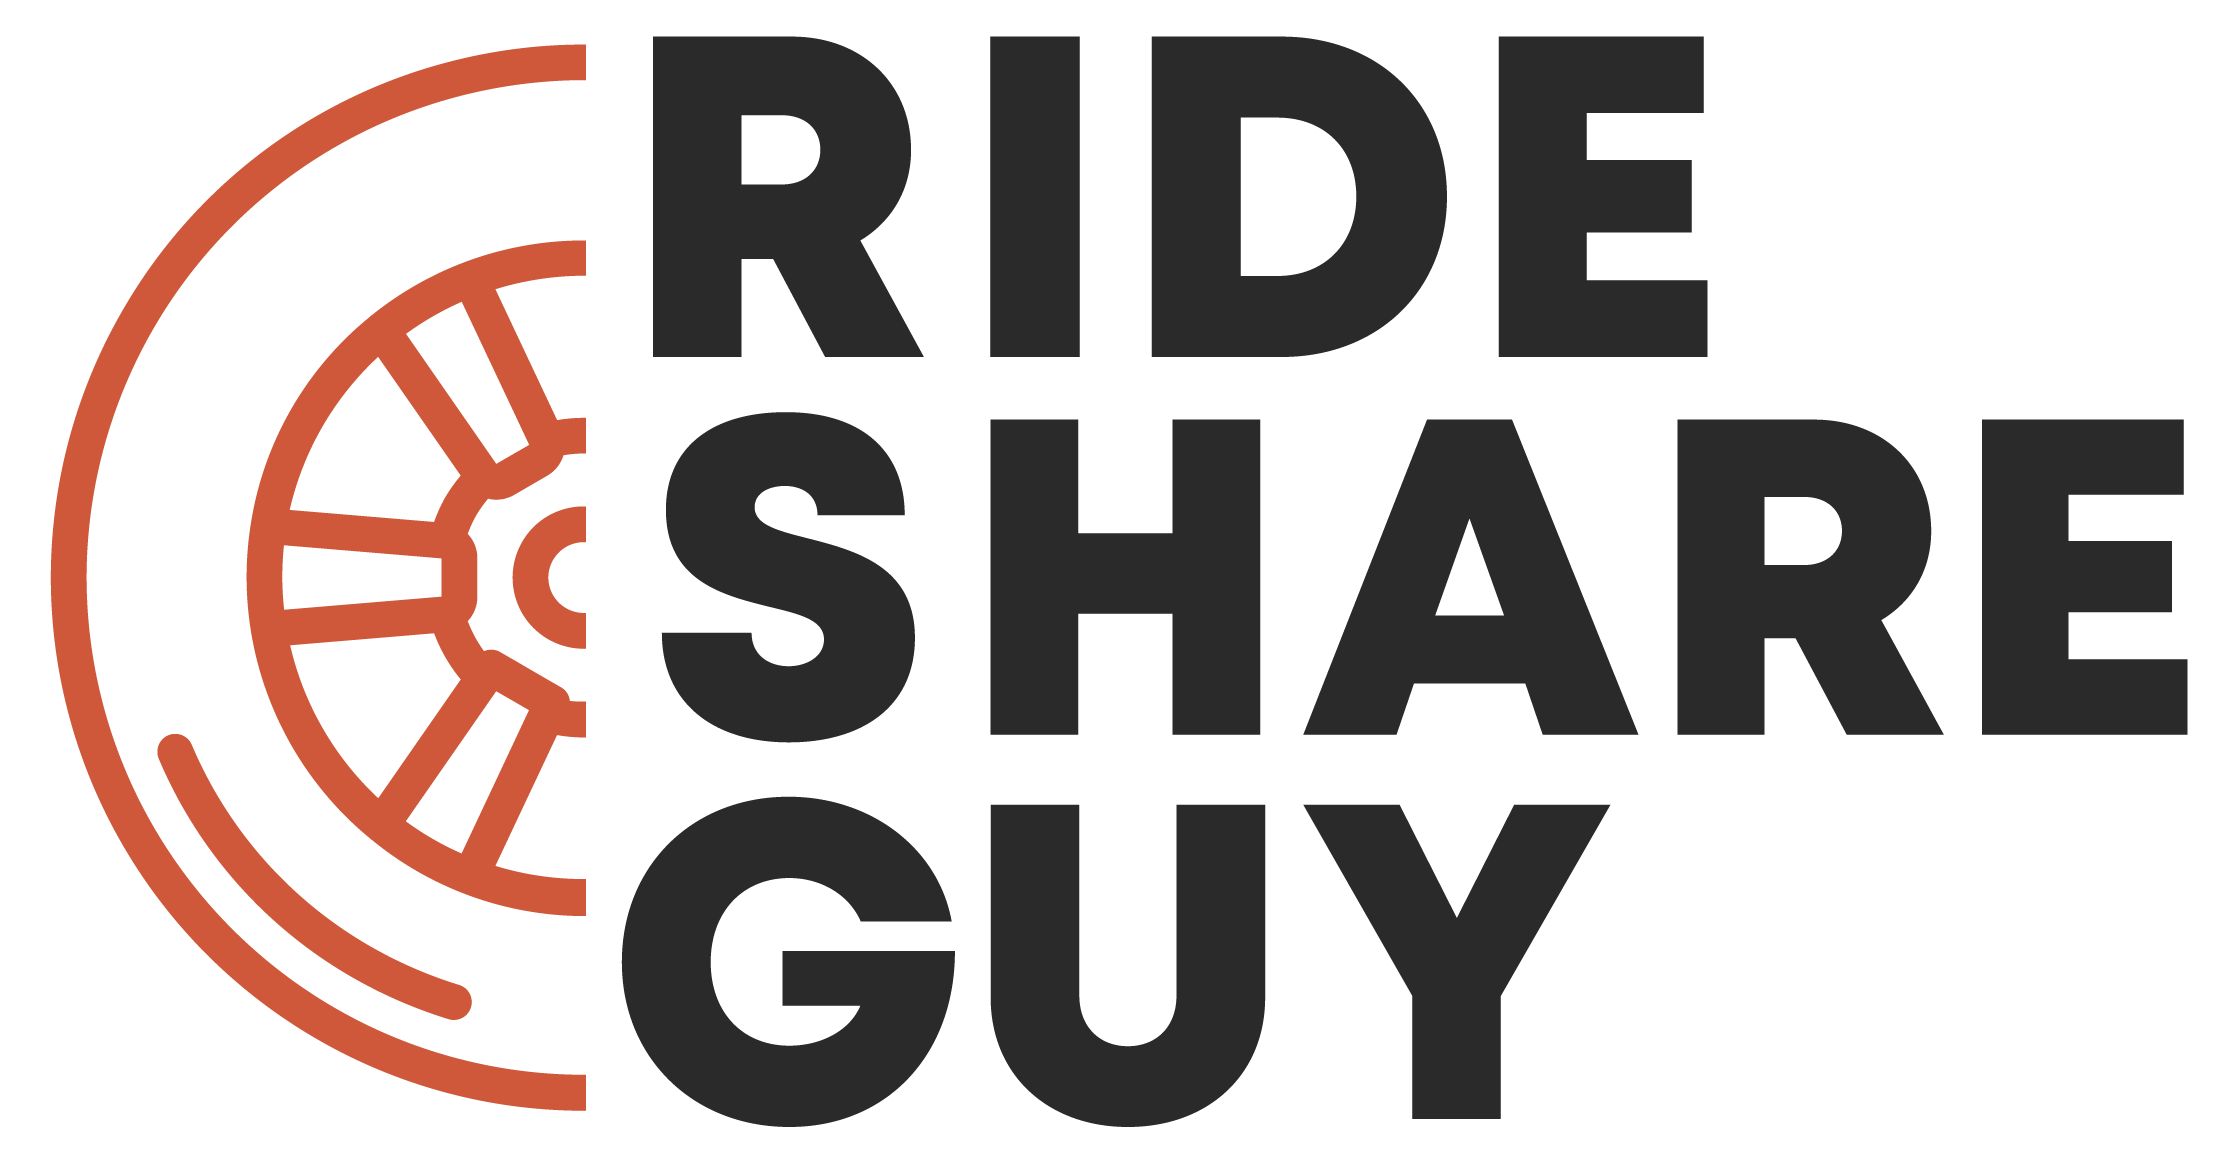 The Rideshare Guy Blog and Podcast